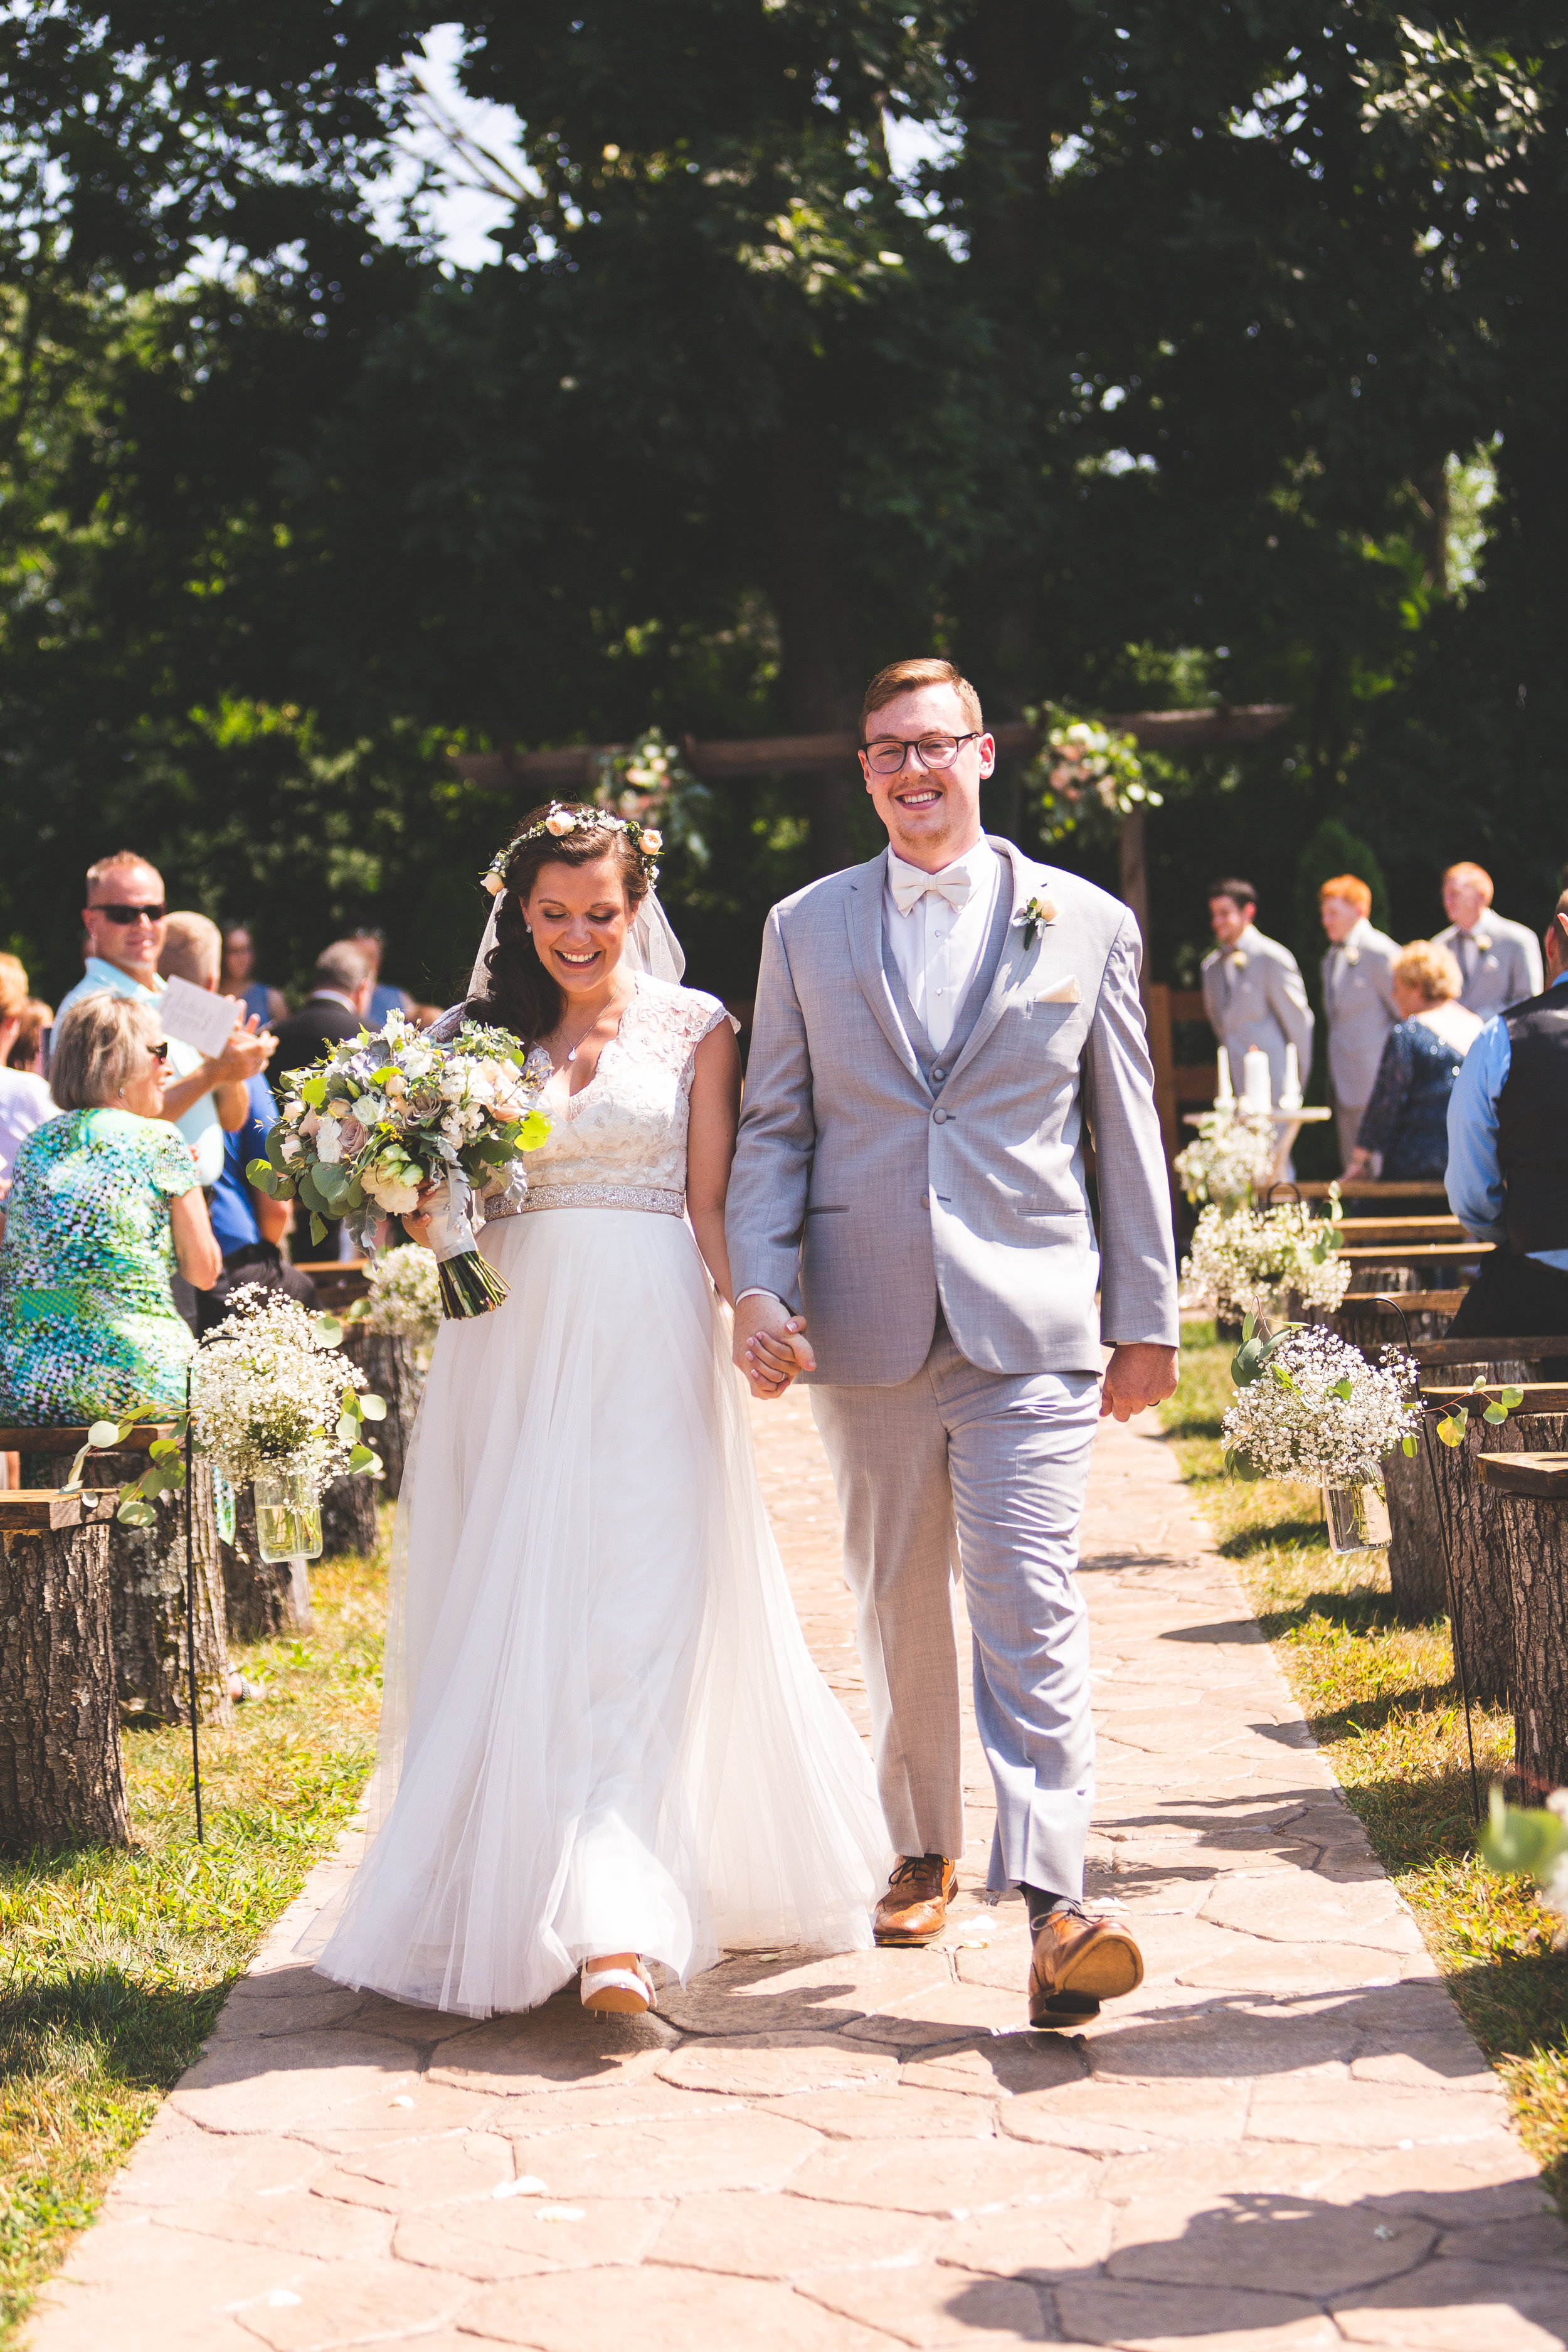 Wedding & Engagement Photography - Our wedding packages include a hand made, professional bound album of your day, and print rights. Our best packages include videography. Photography starting at $1,200.